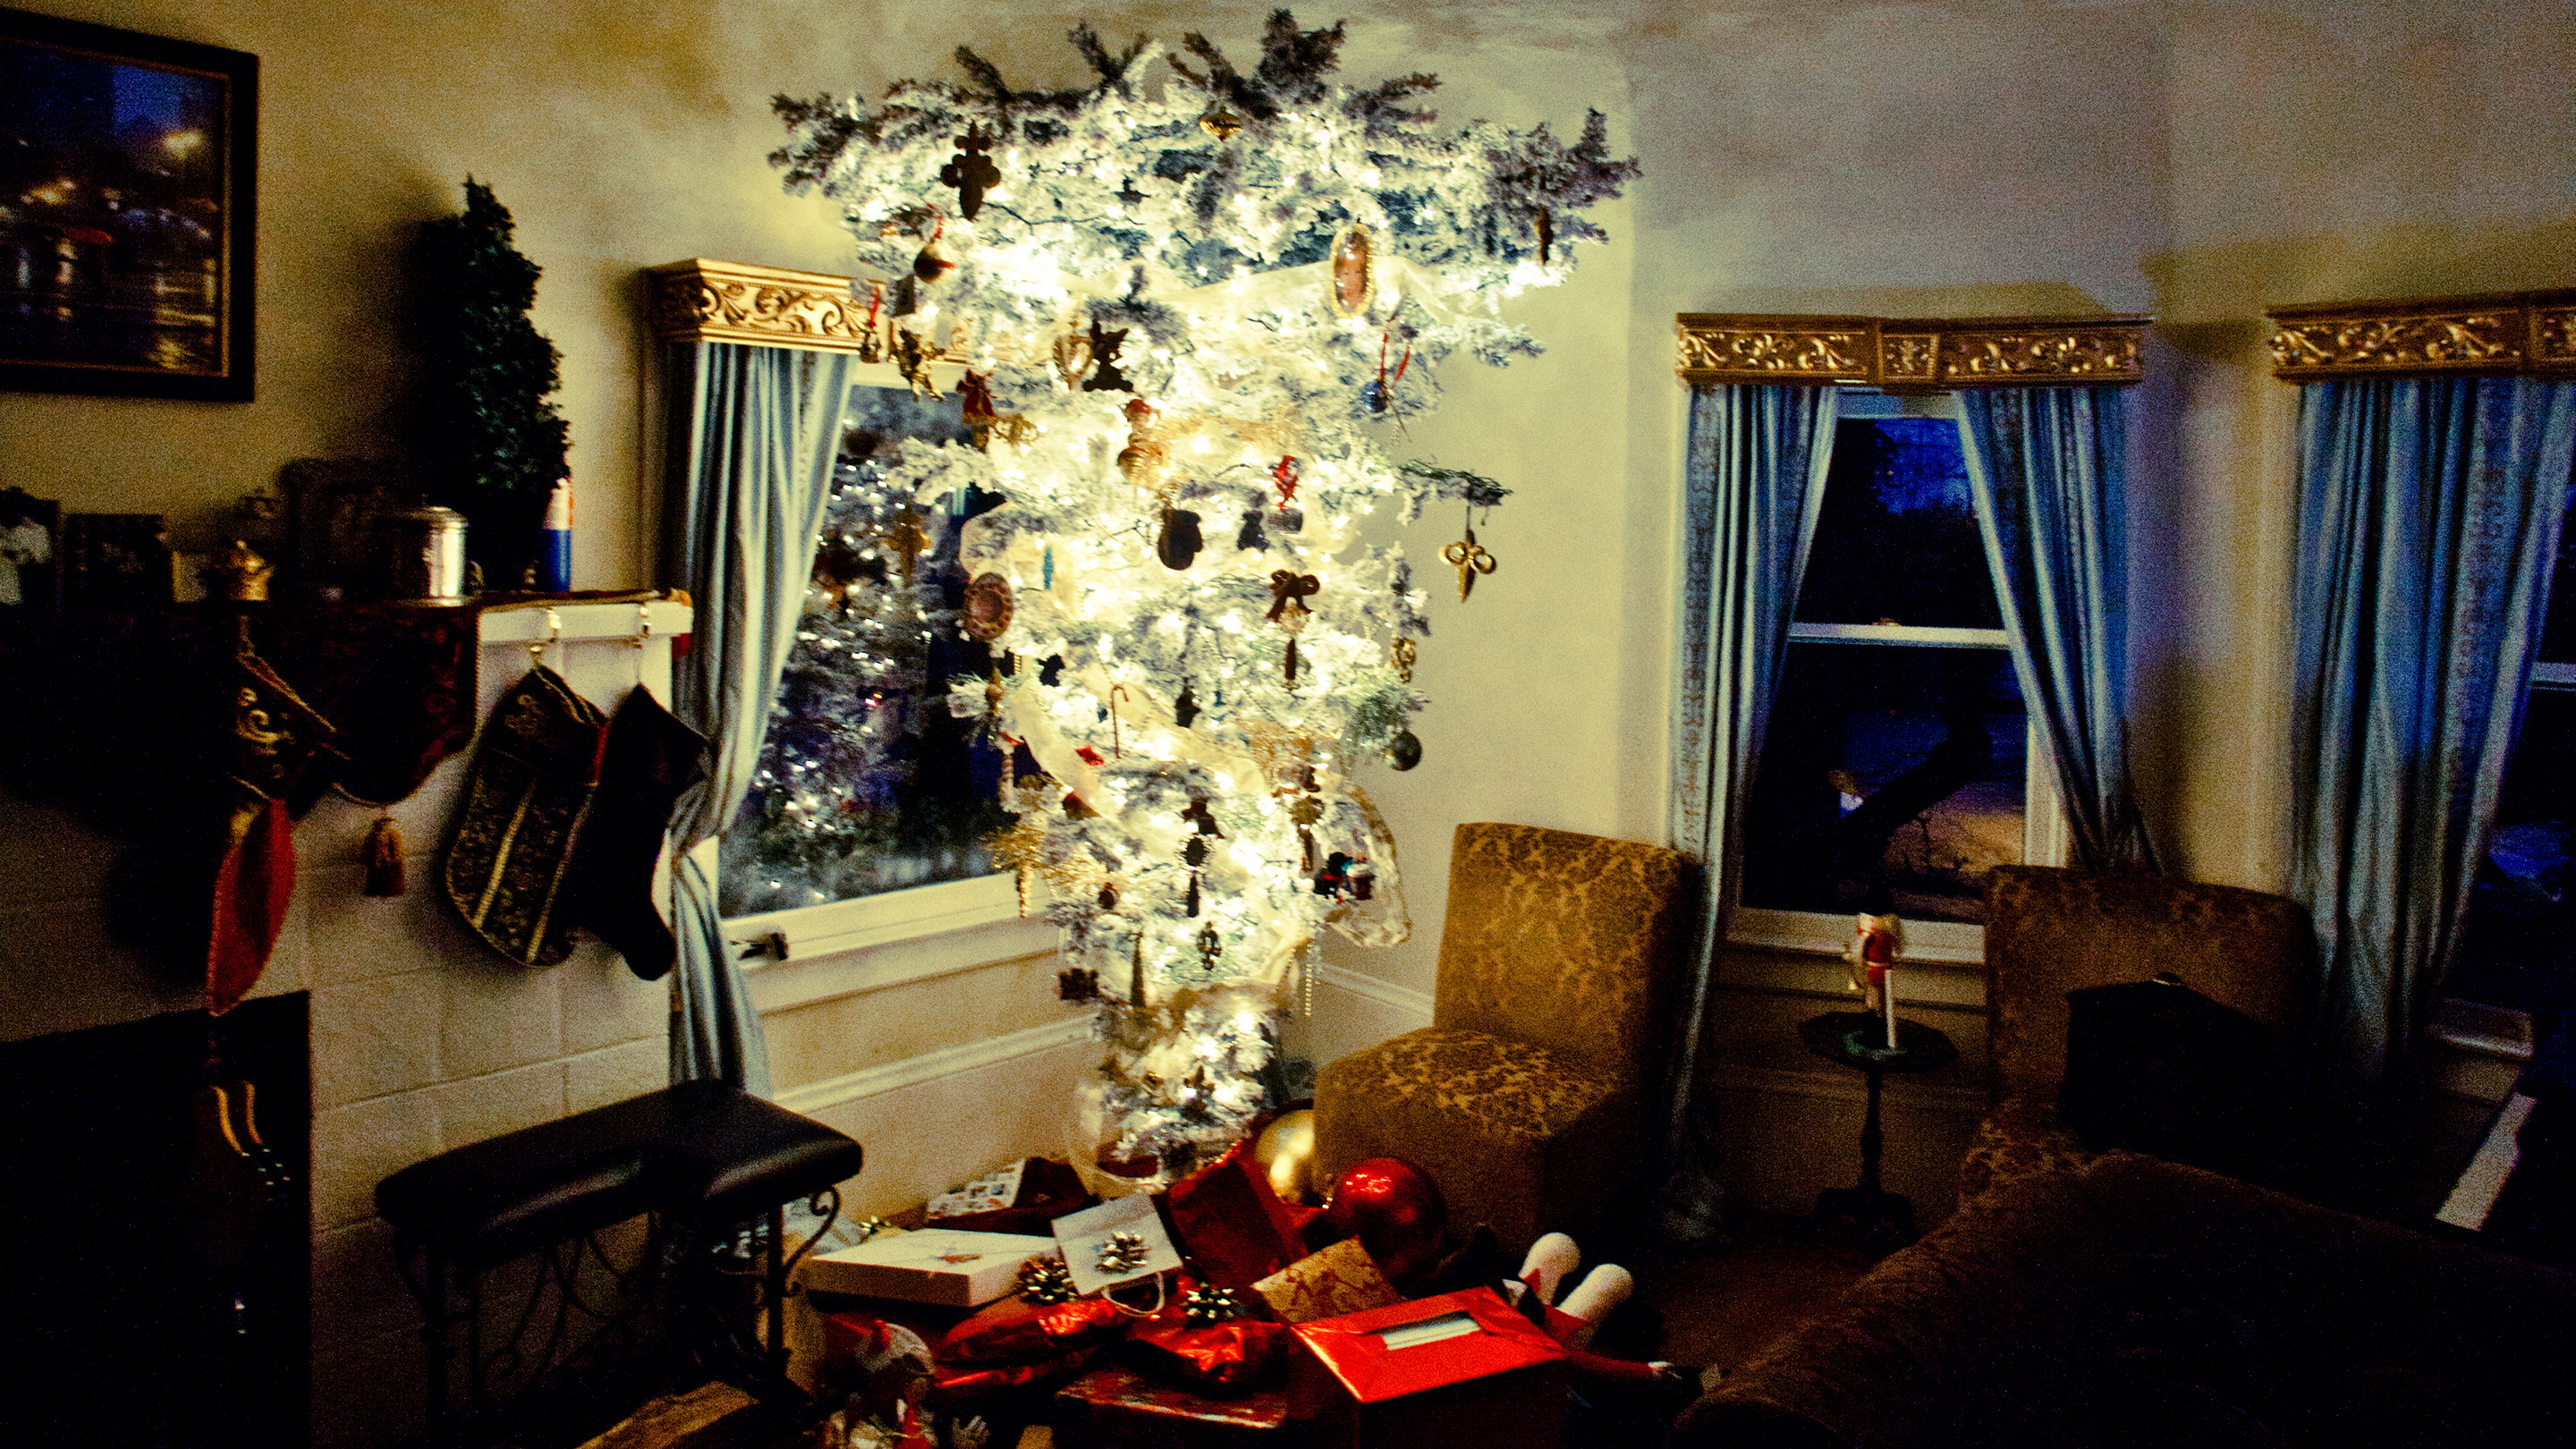 The Upside Down Christmas Tree What S It All About Marketplace